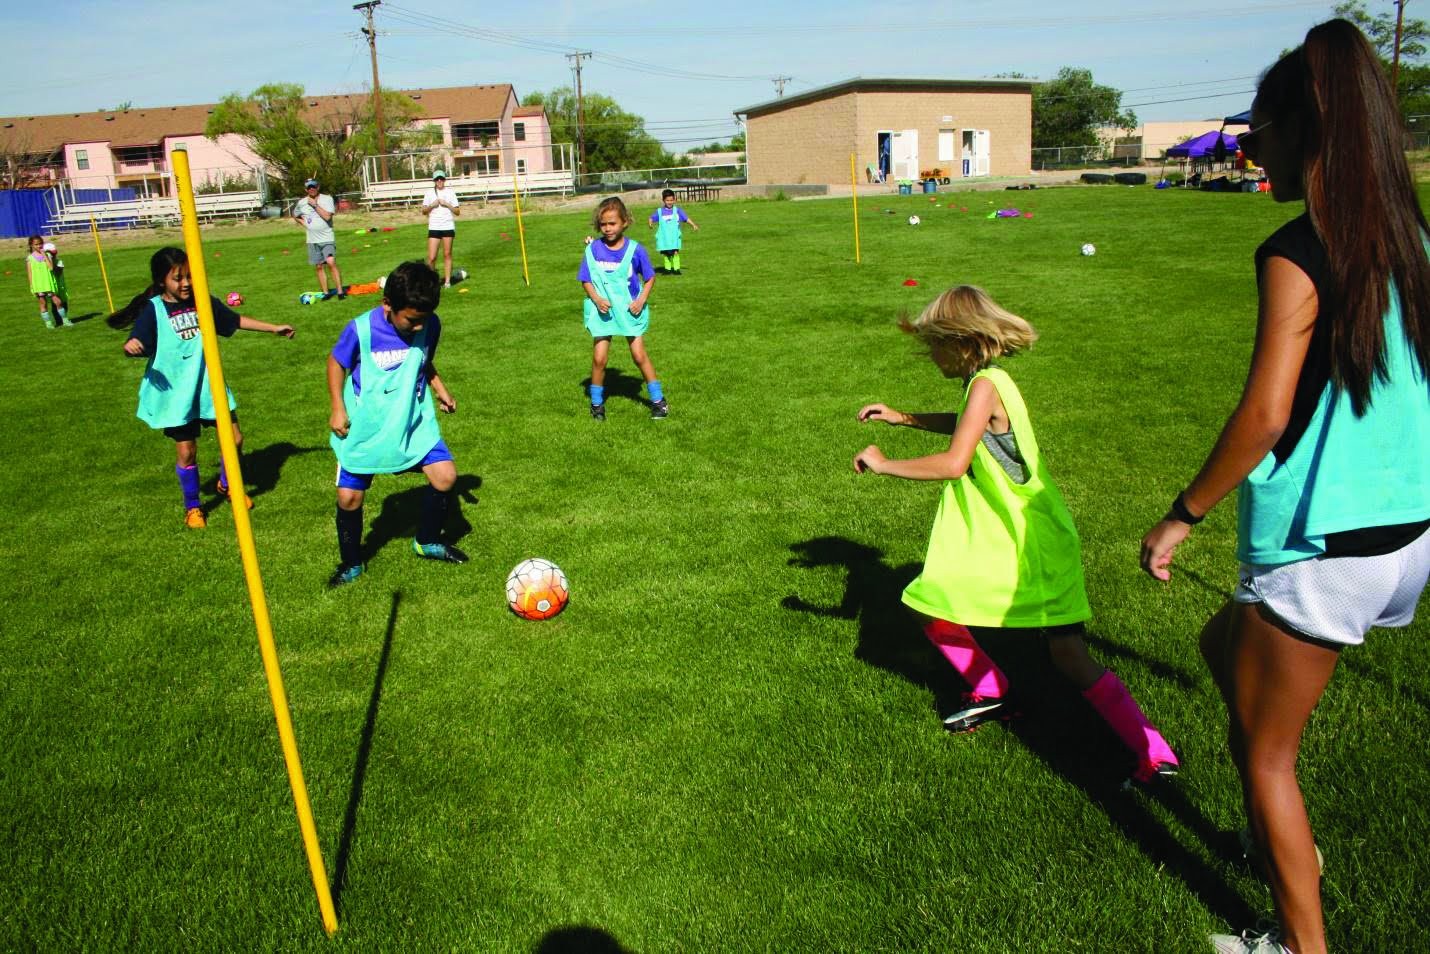 Manzano Soccer Camp: Partnering older students with younger to pass on their drive